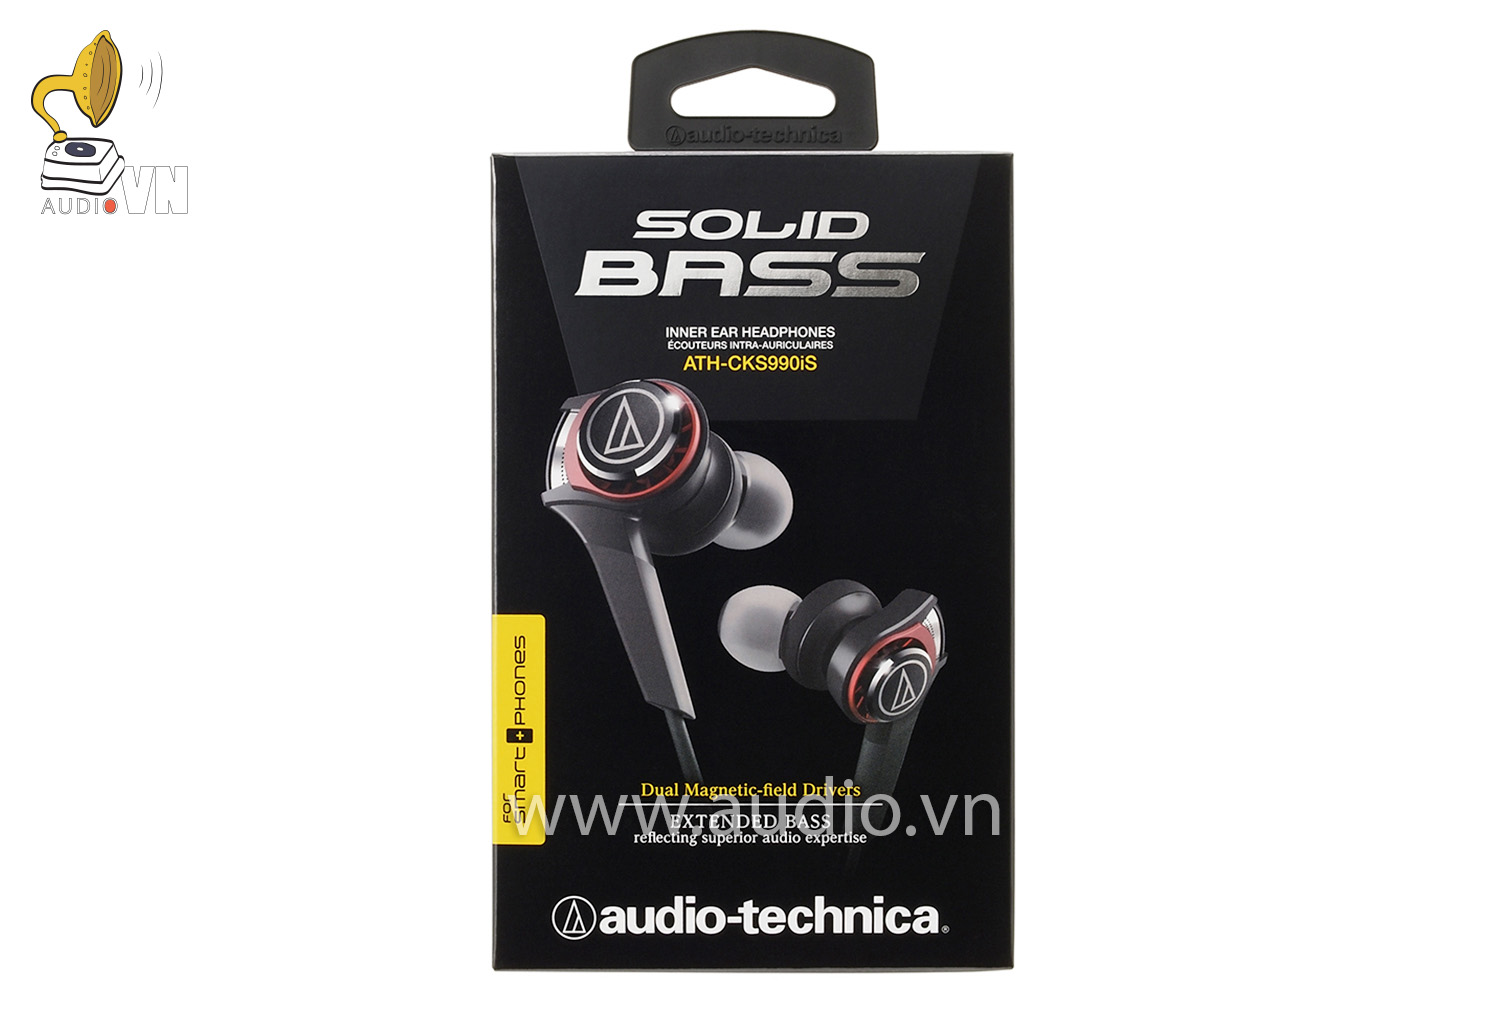 Tai nghe Audio Technica ATH-CKS990IS